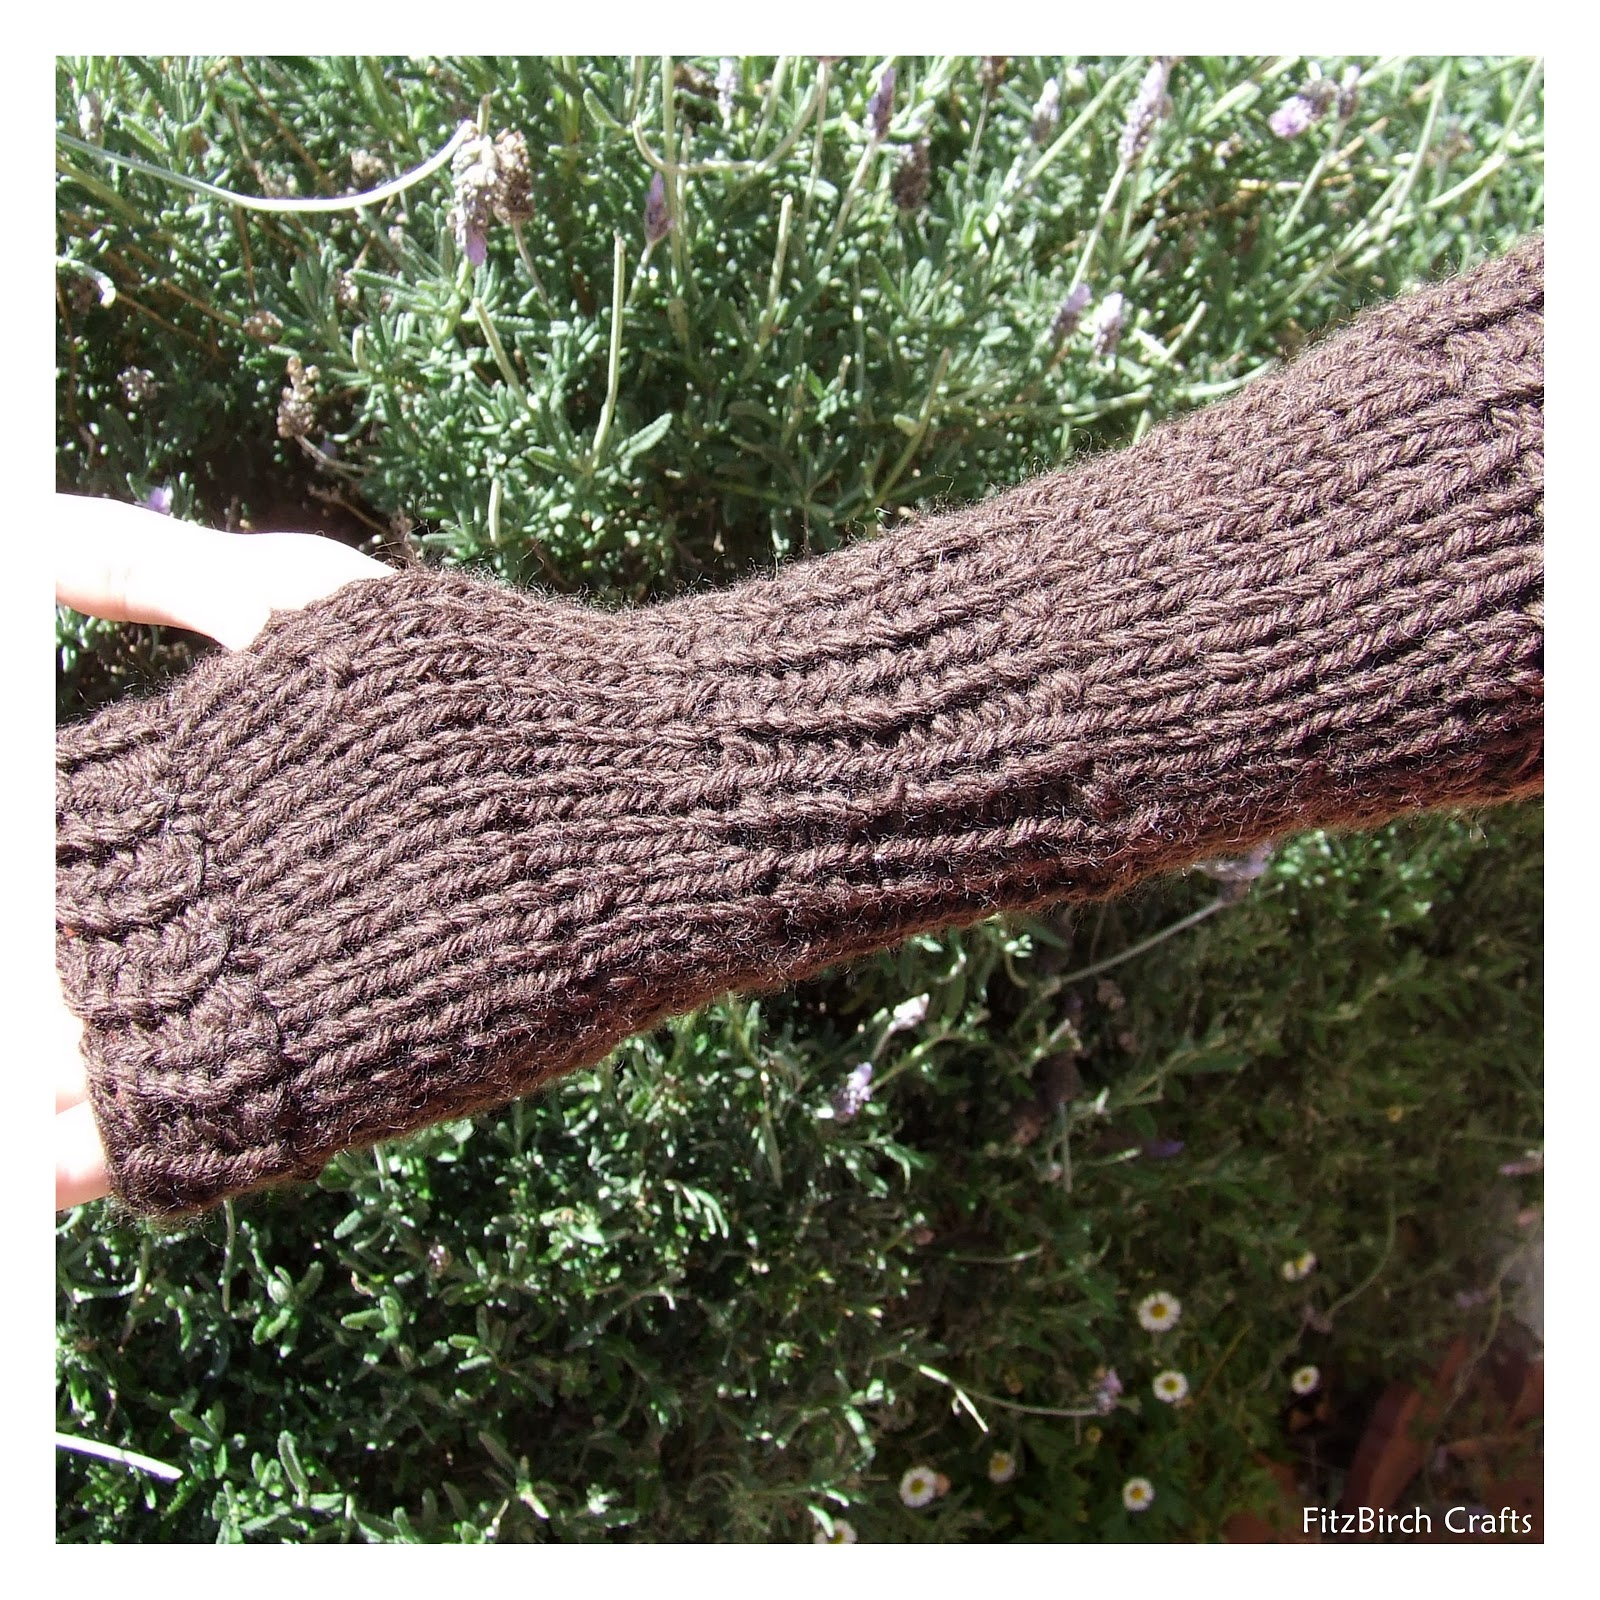 Loom Knit Fingerless Gloves Pattern : FitzBirch Crafts: Legend of Zelda Loom Knit Link Gauntlets (Fingerless Gloves)